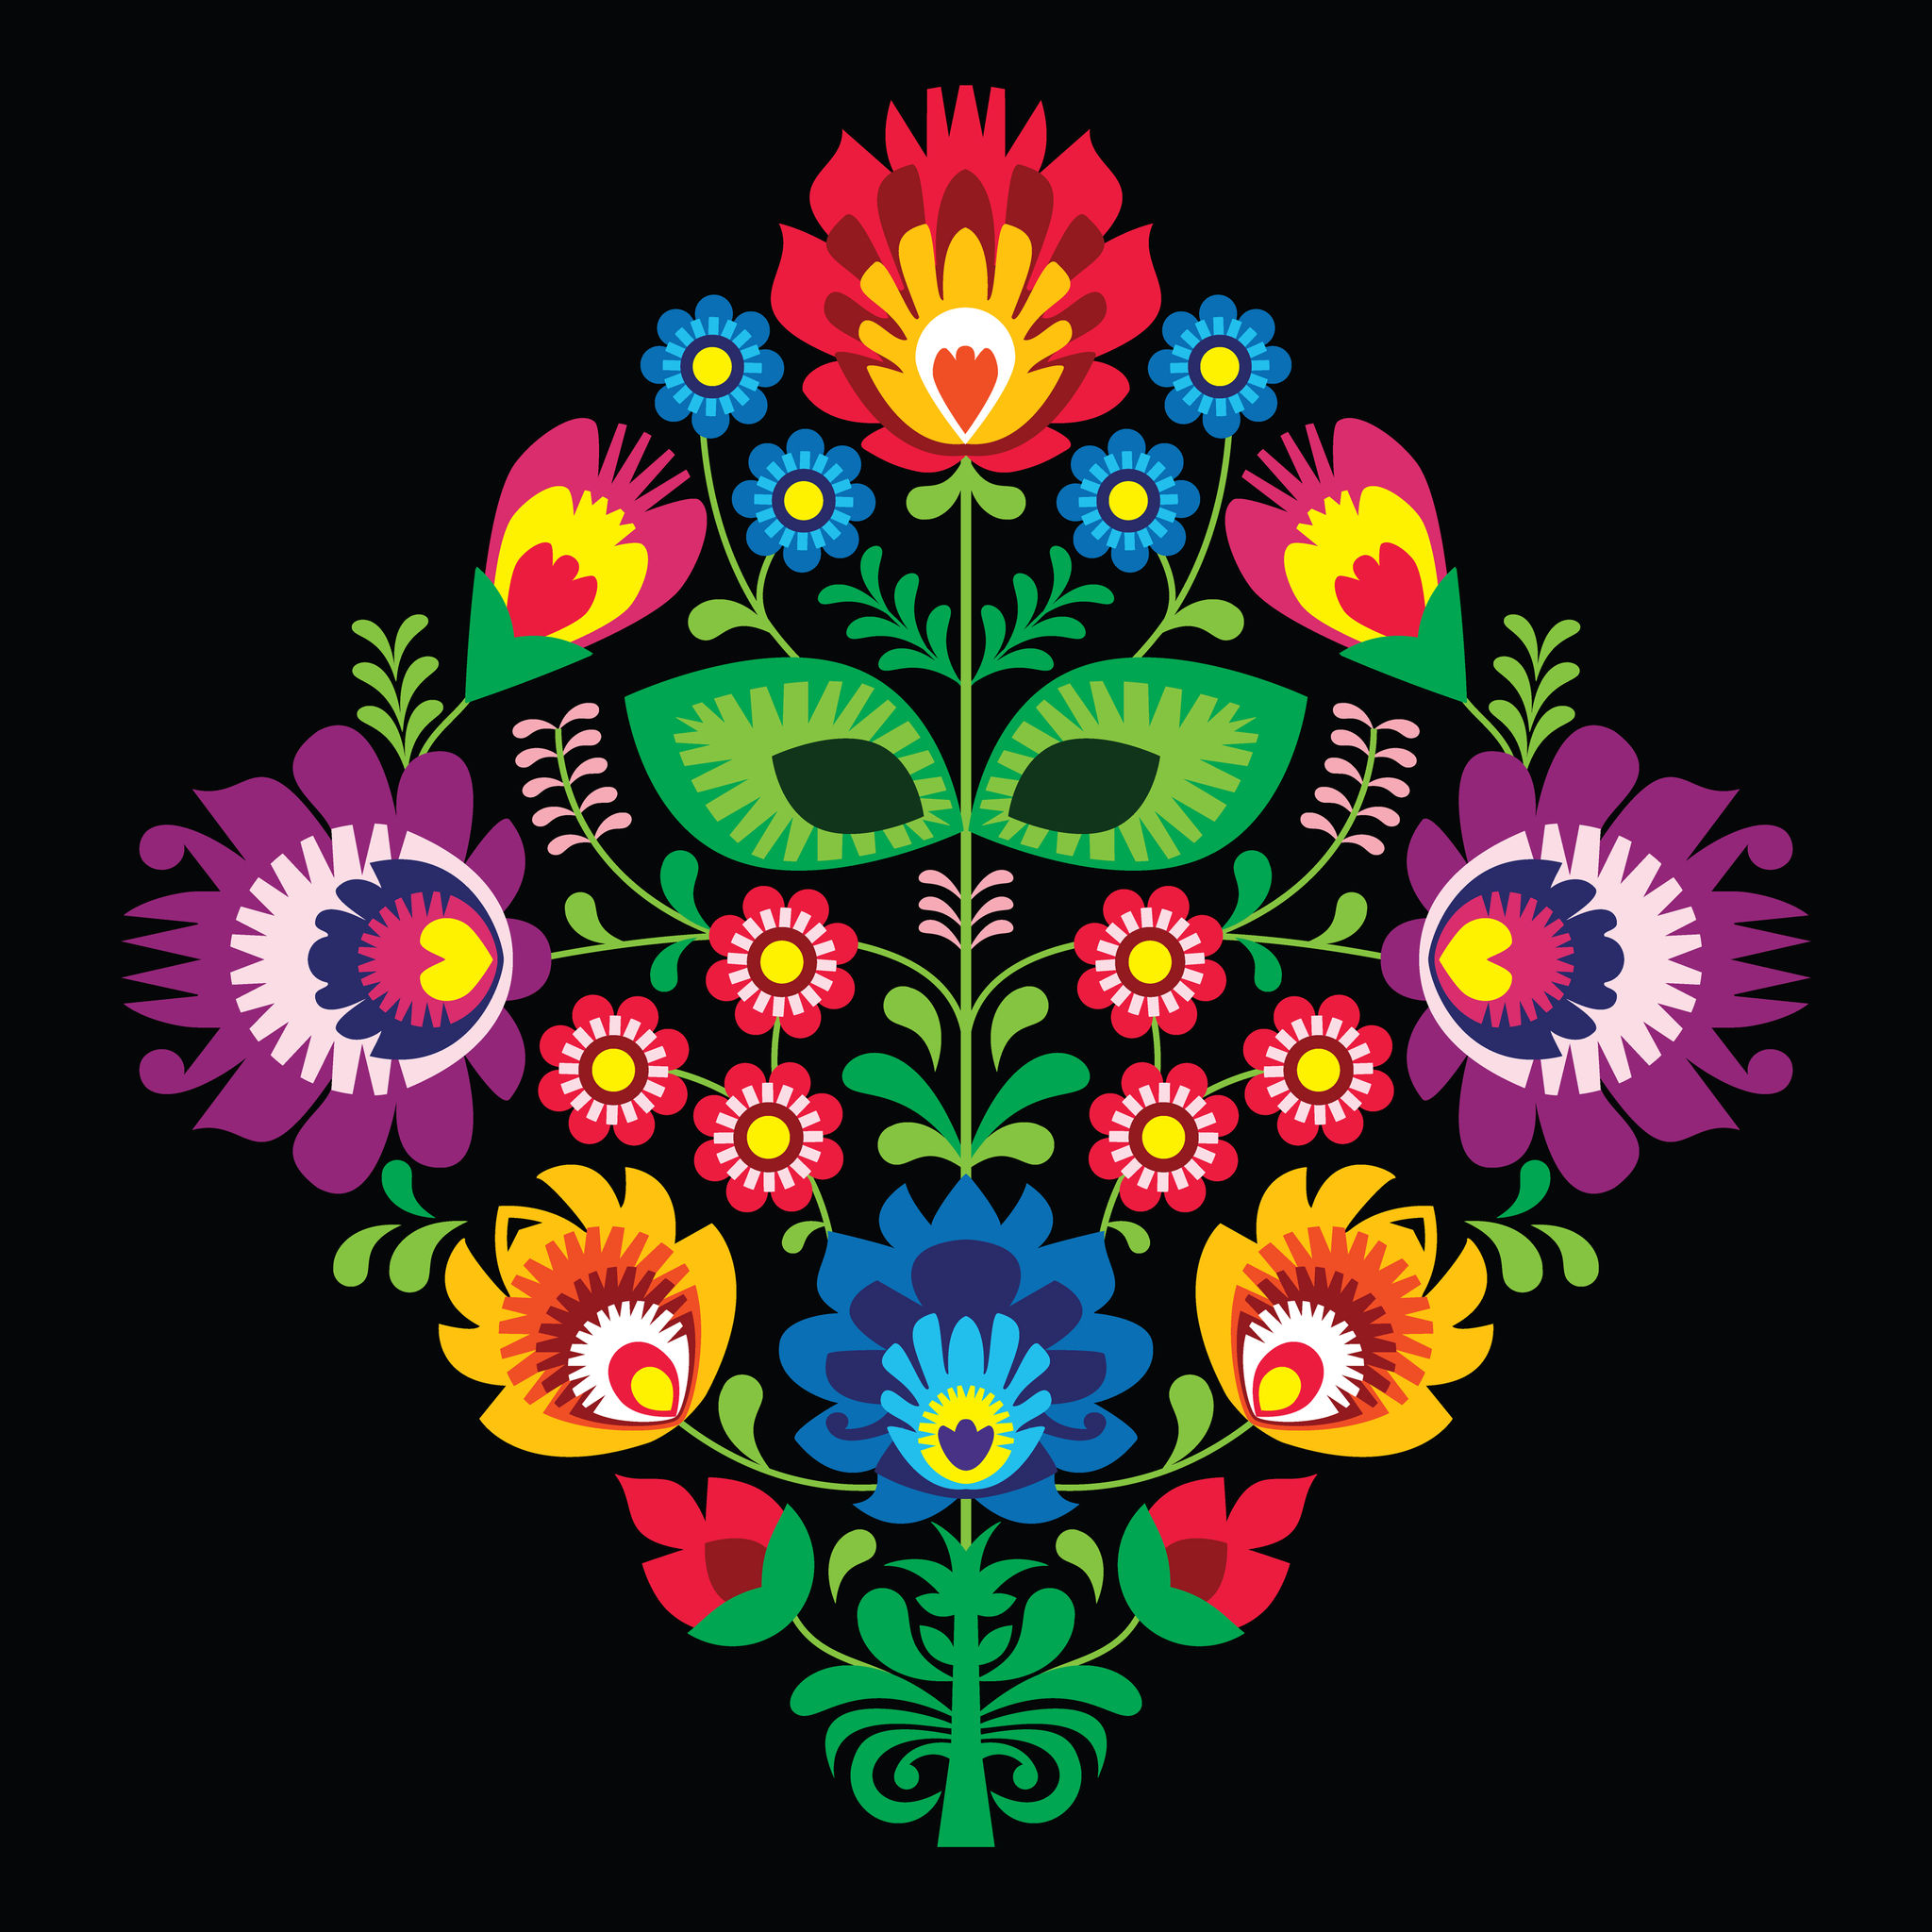 24947597 - folk embroidery with flowers - traditional polish pattern on black background